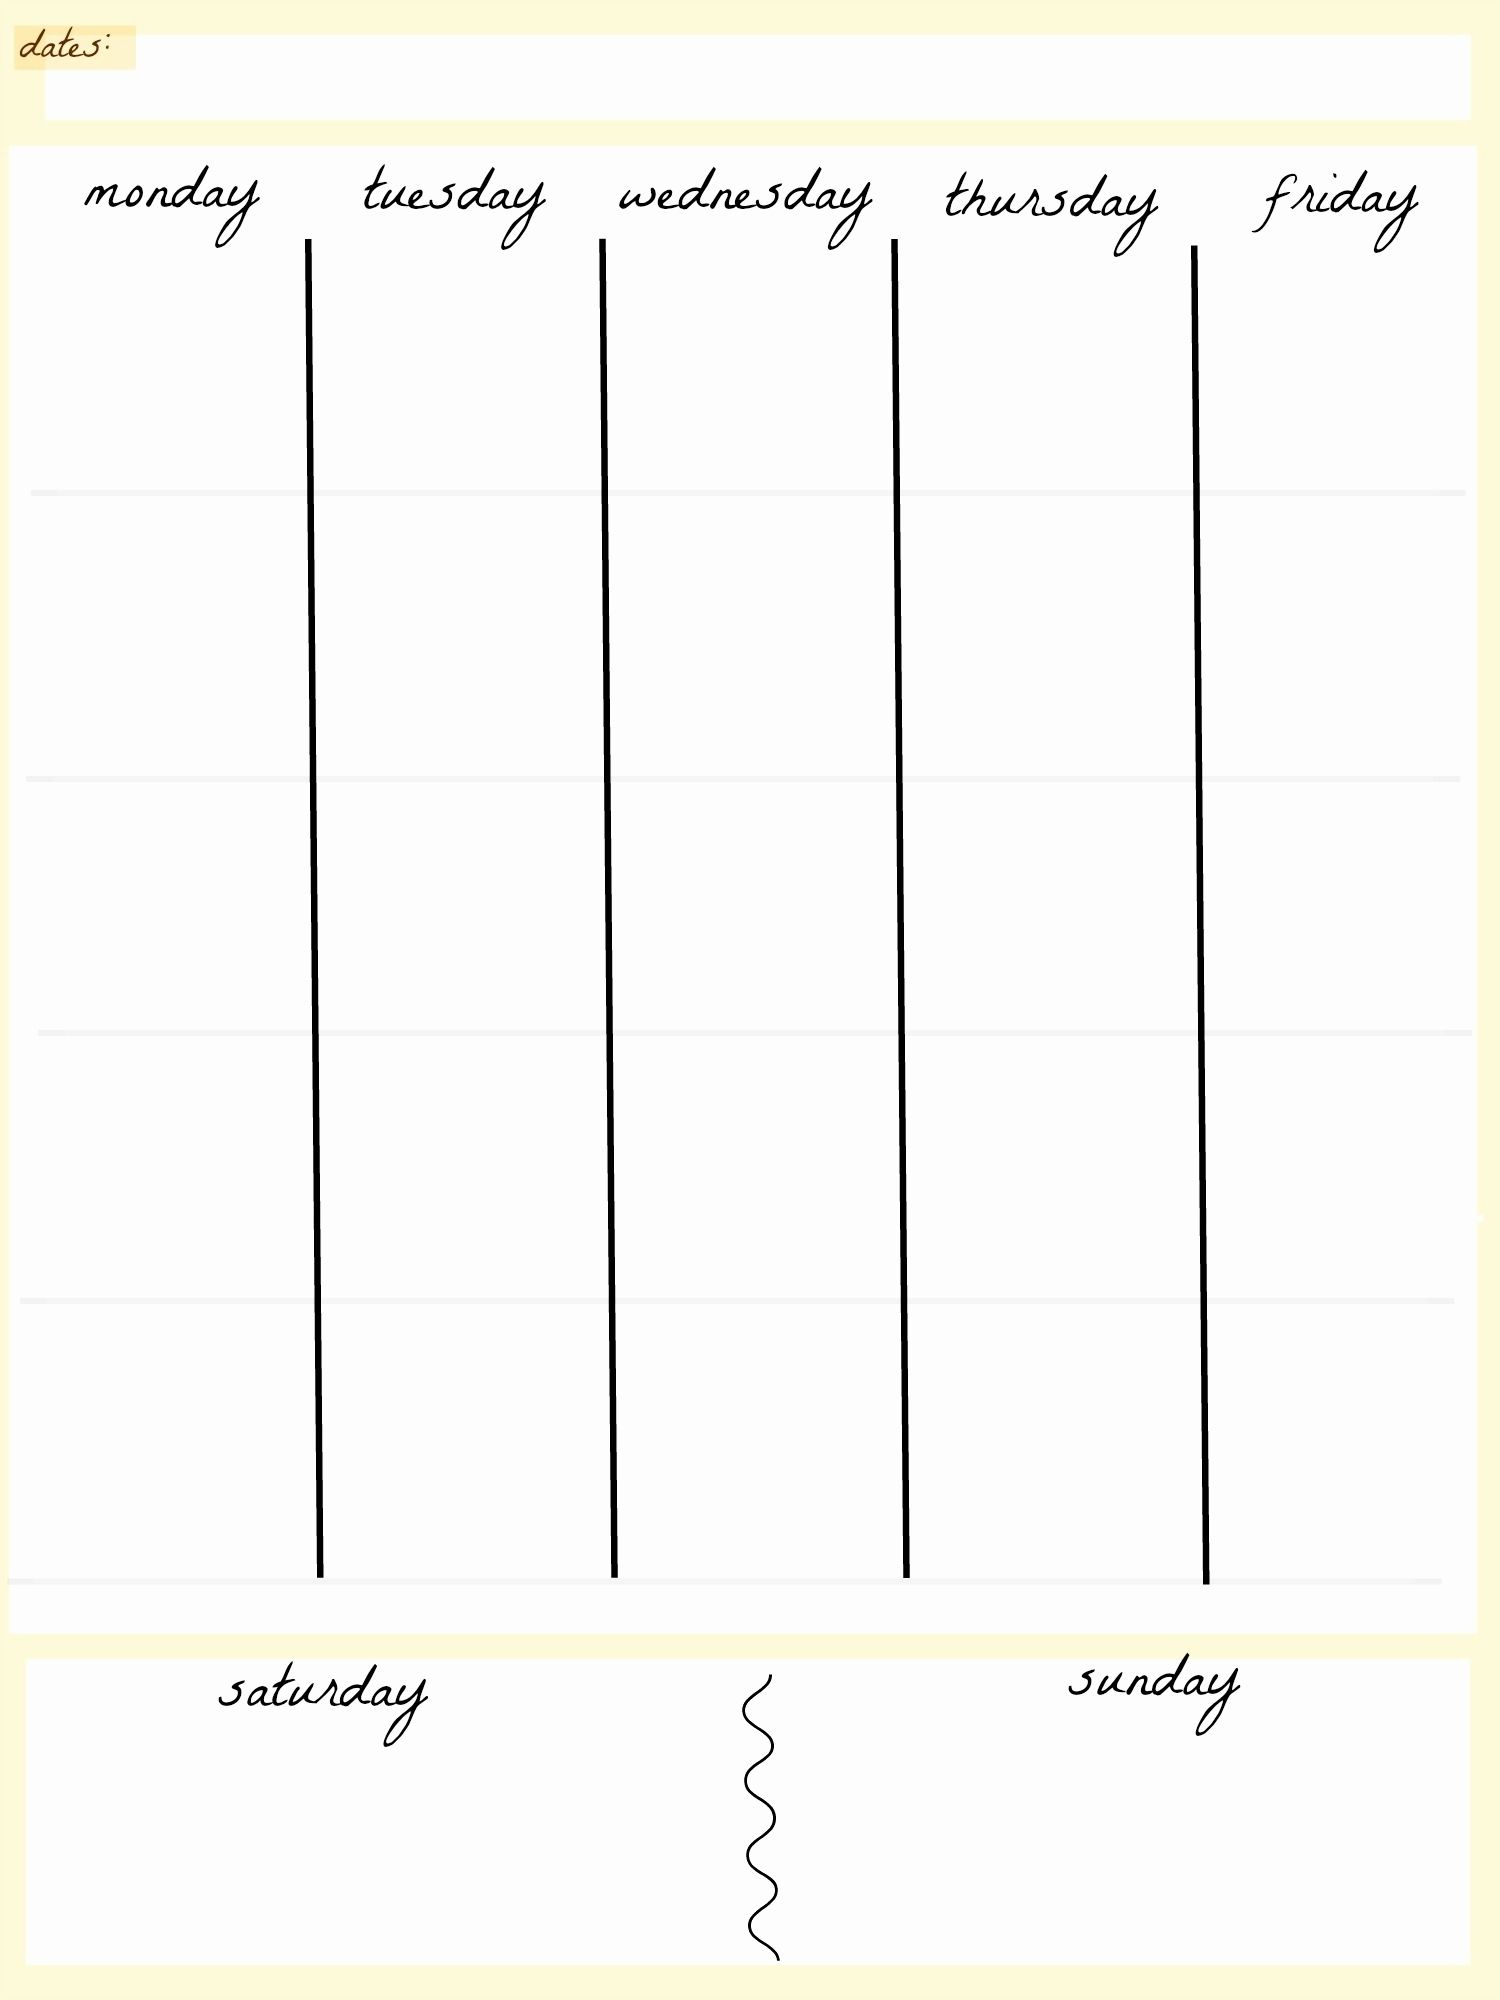 Blank Calendar 5 Day Week | Blank Calendar Template Dowload pertaining to 5 Day Monthly Calendar